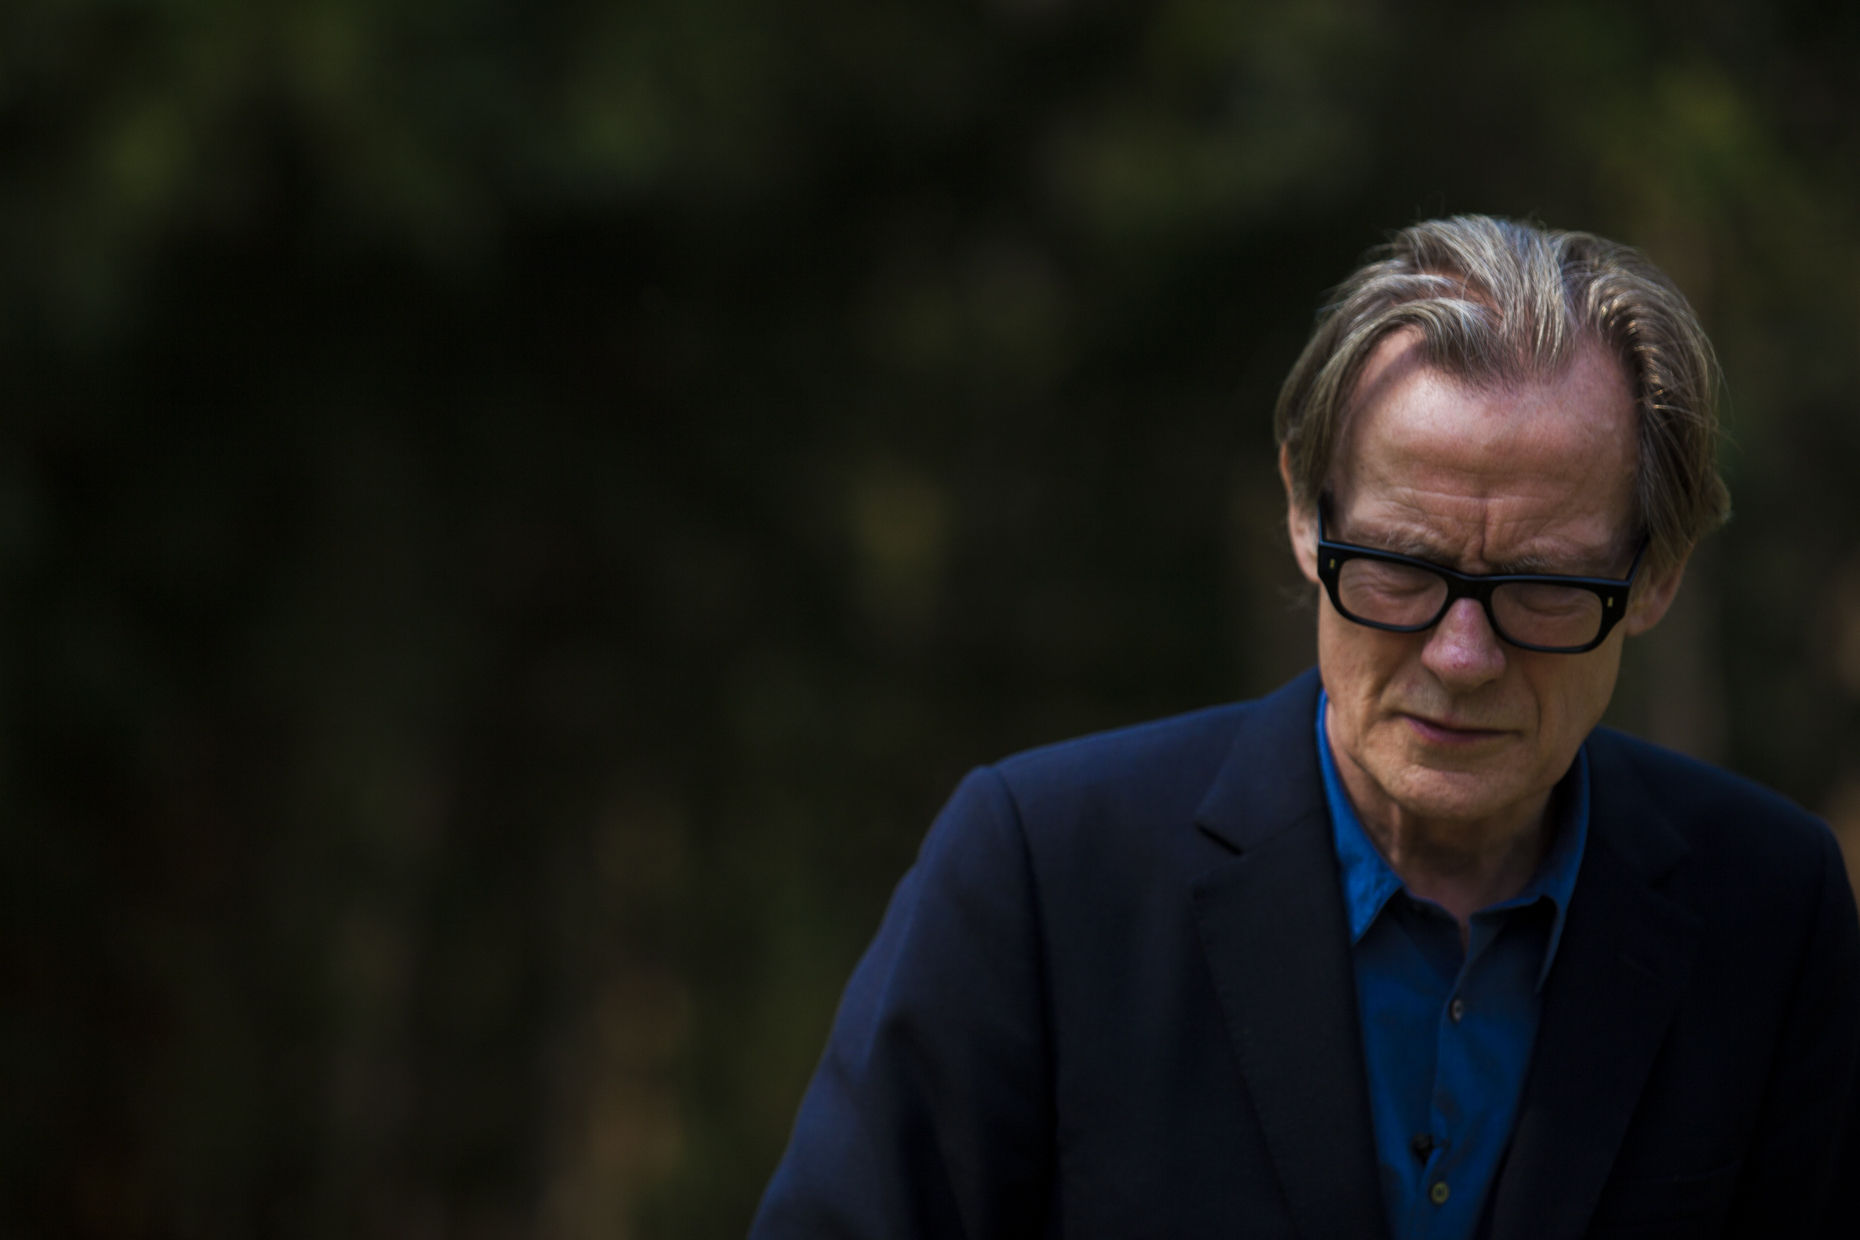 Bill Nighy, actor